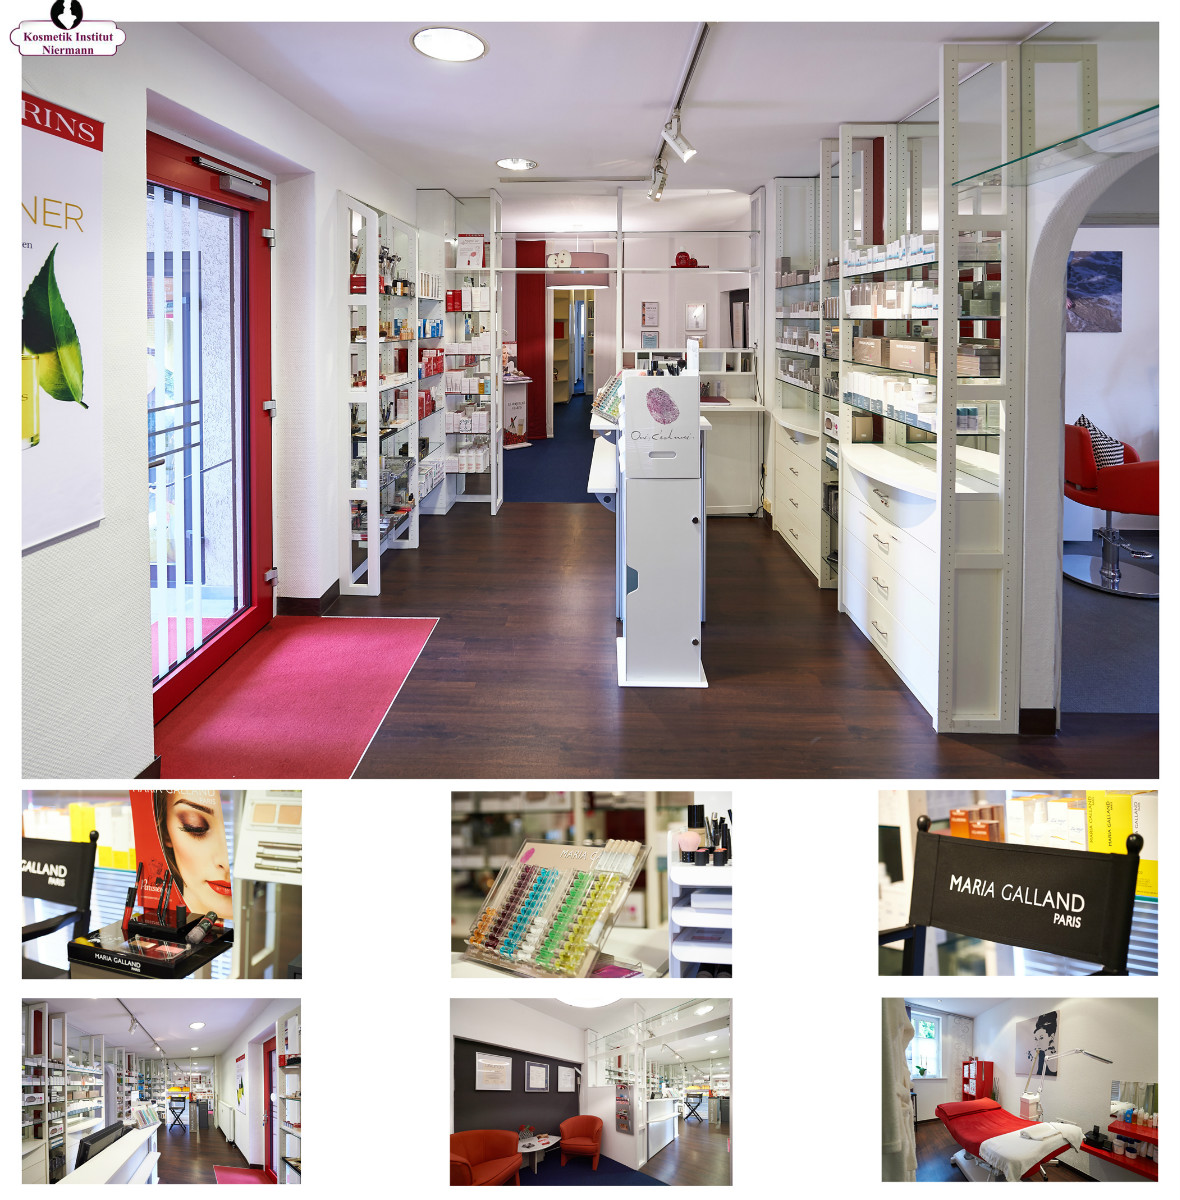 kosmetik-institut-niermann-collage